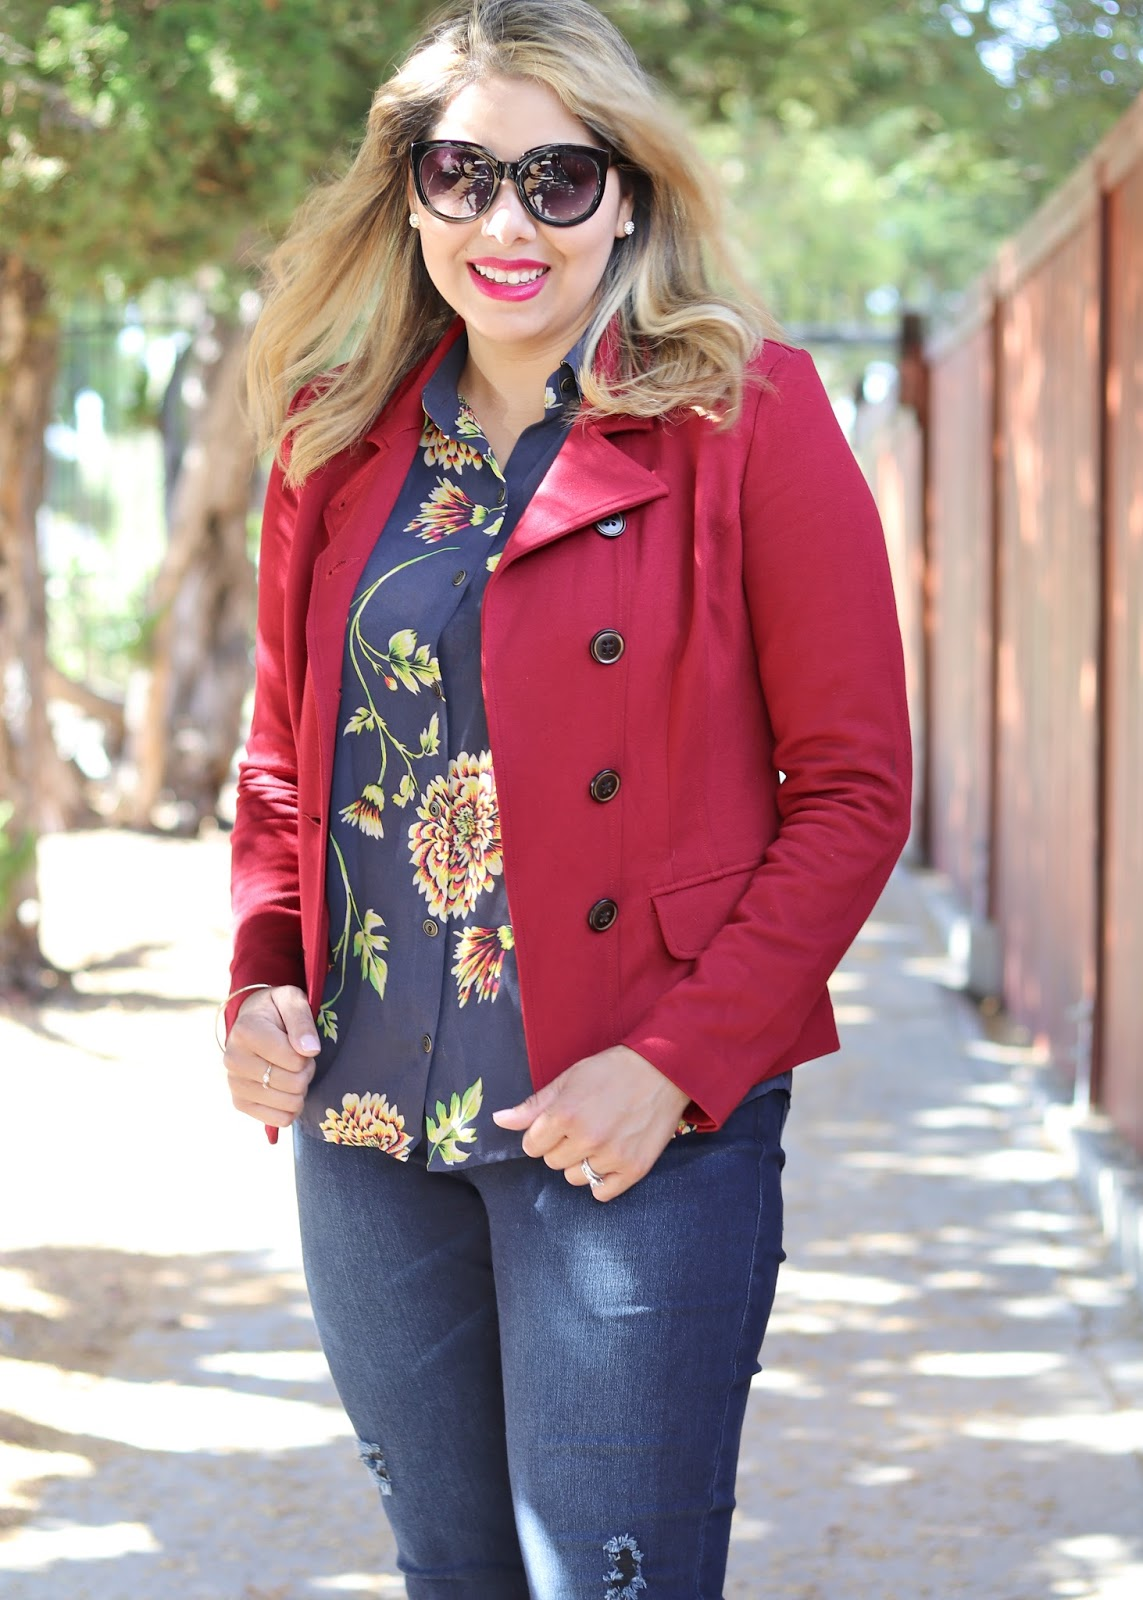 Burgundy blazer, cabi red outing blazer, cabi burgundy blazer, fall 2016 trends